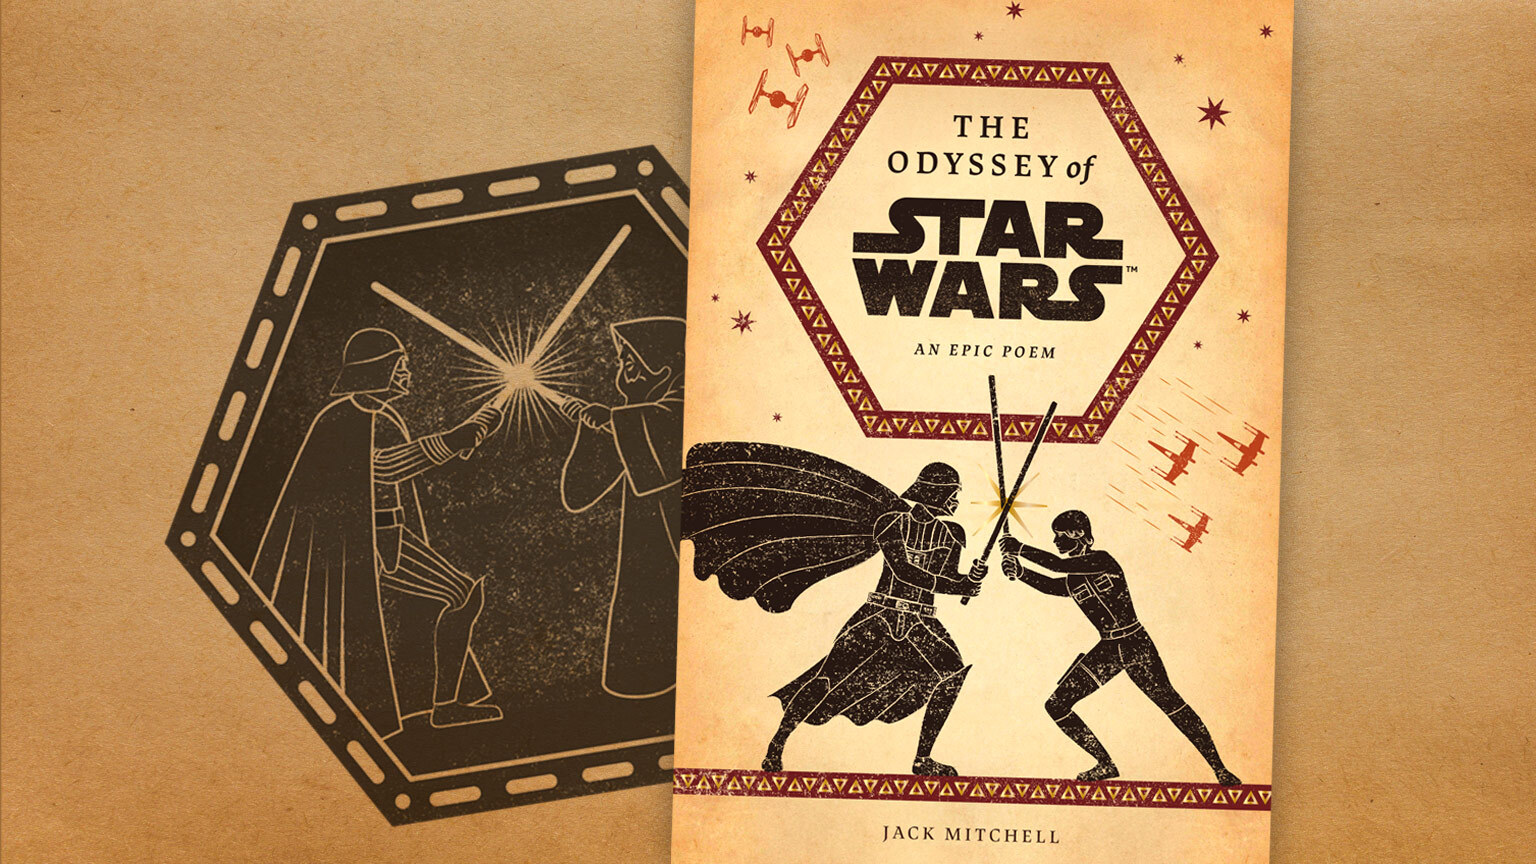 The Odyssey of Star Wars